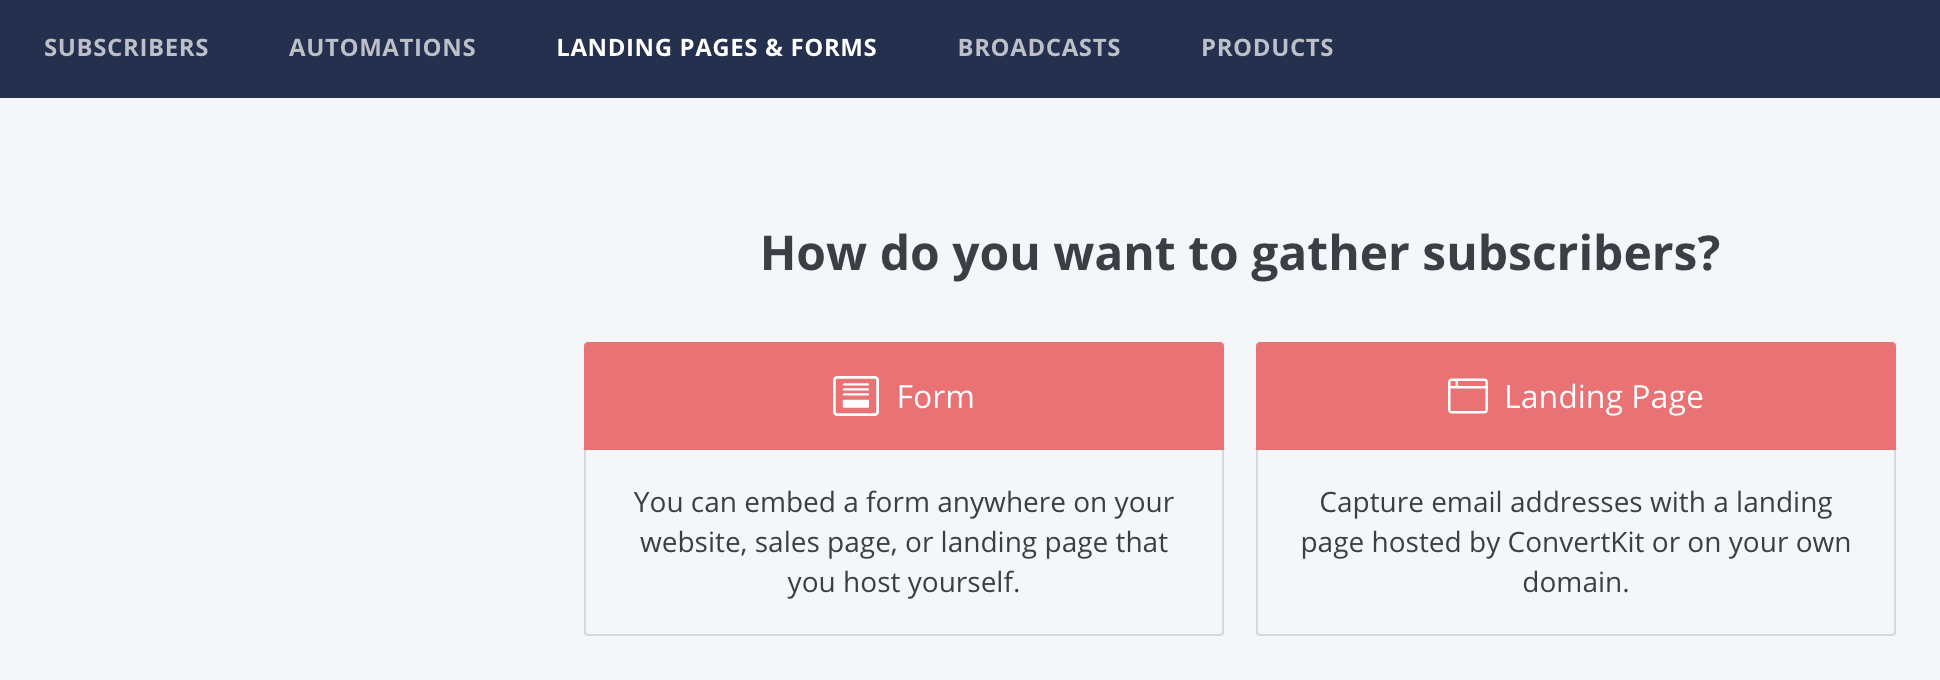 Forms and landing pages in Converkit